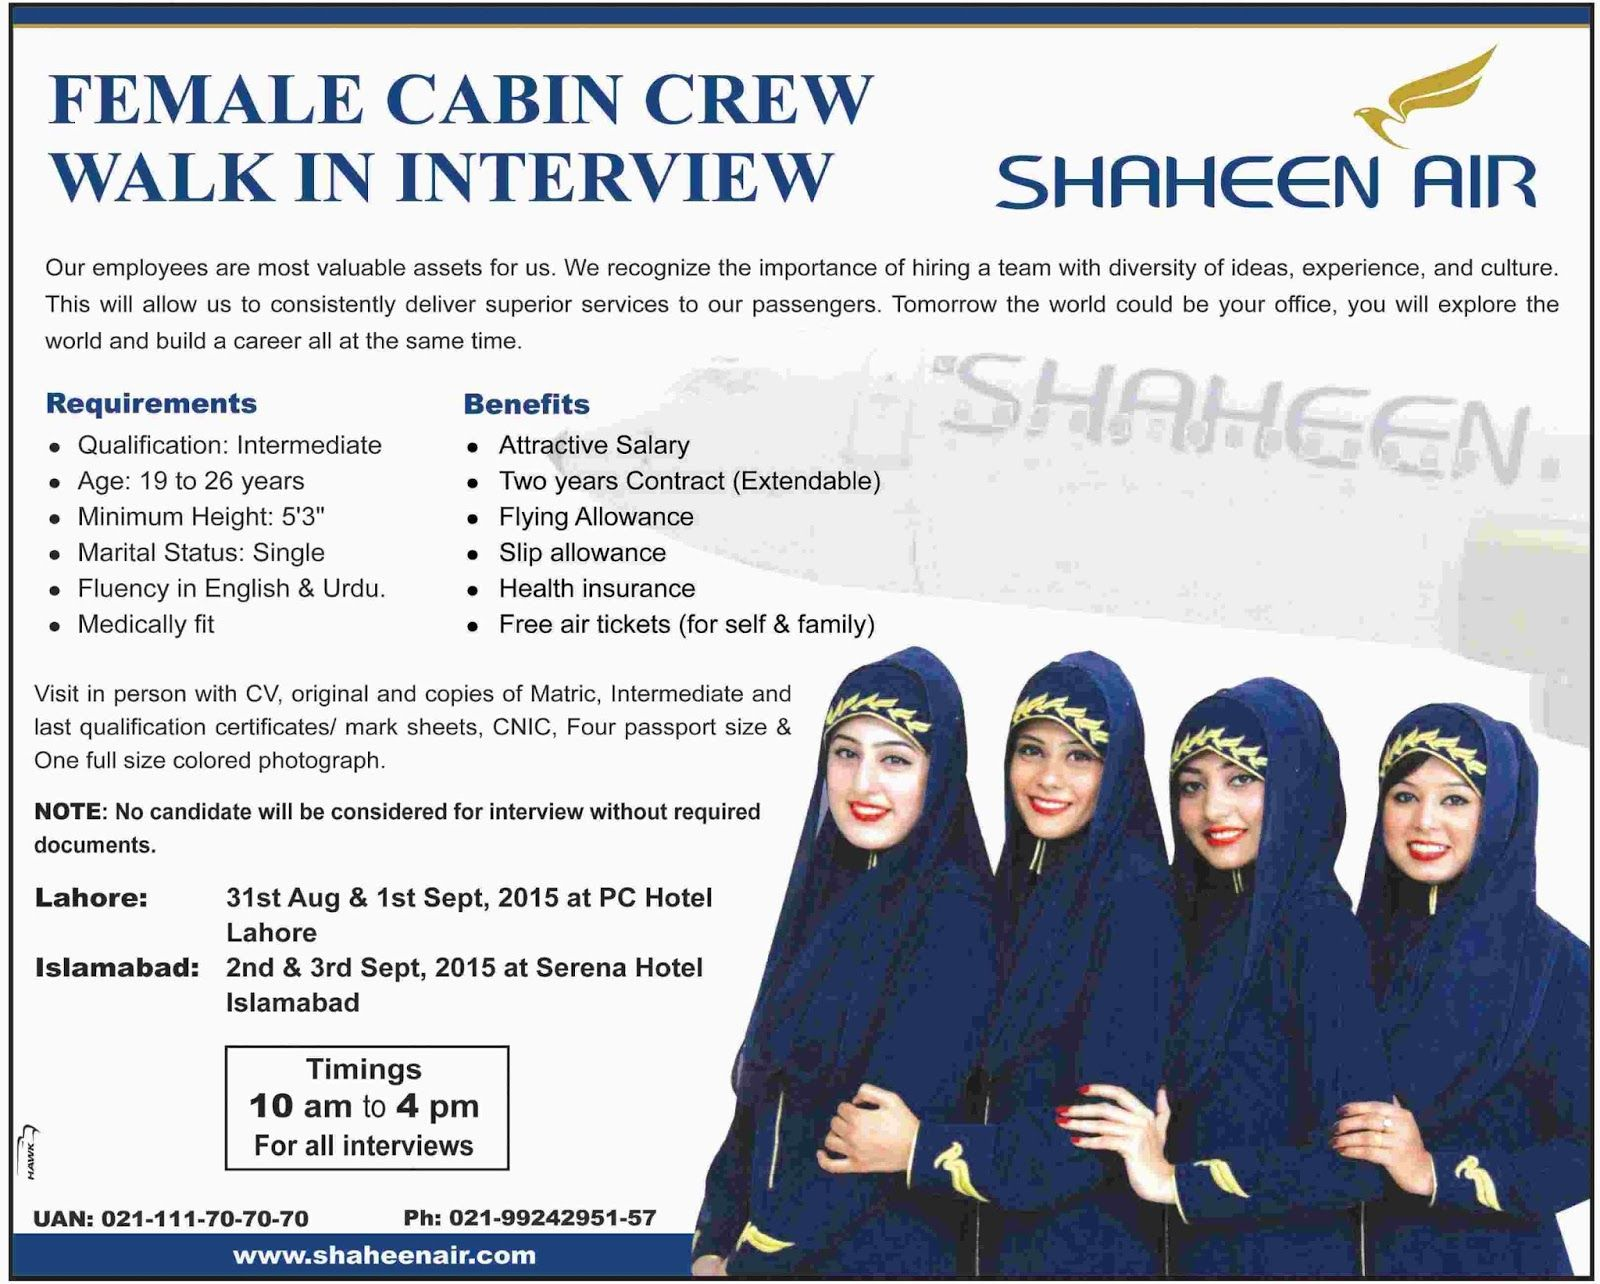 Female Cabin Crew  Air Hostess Jobs In Shaheen Air  Jobs Corner